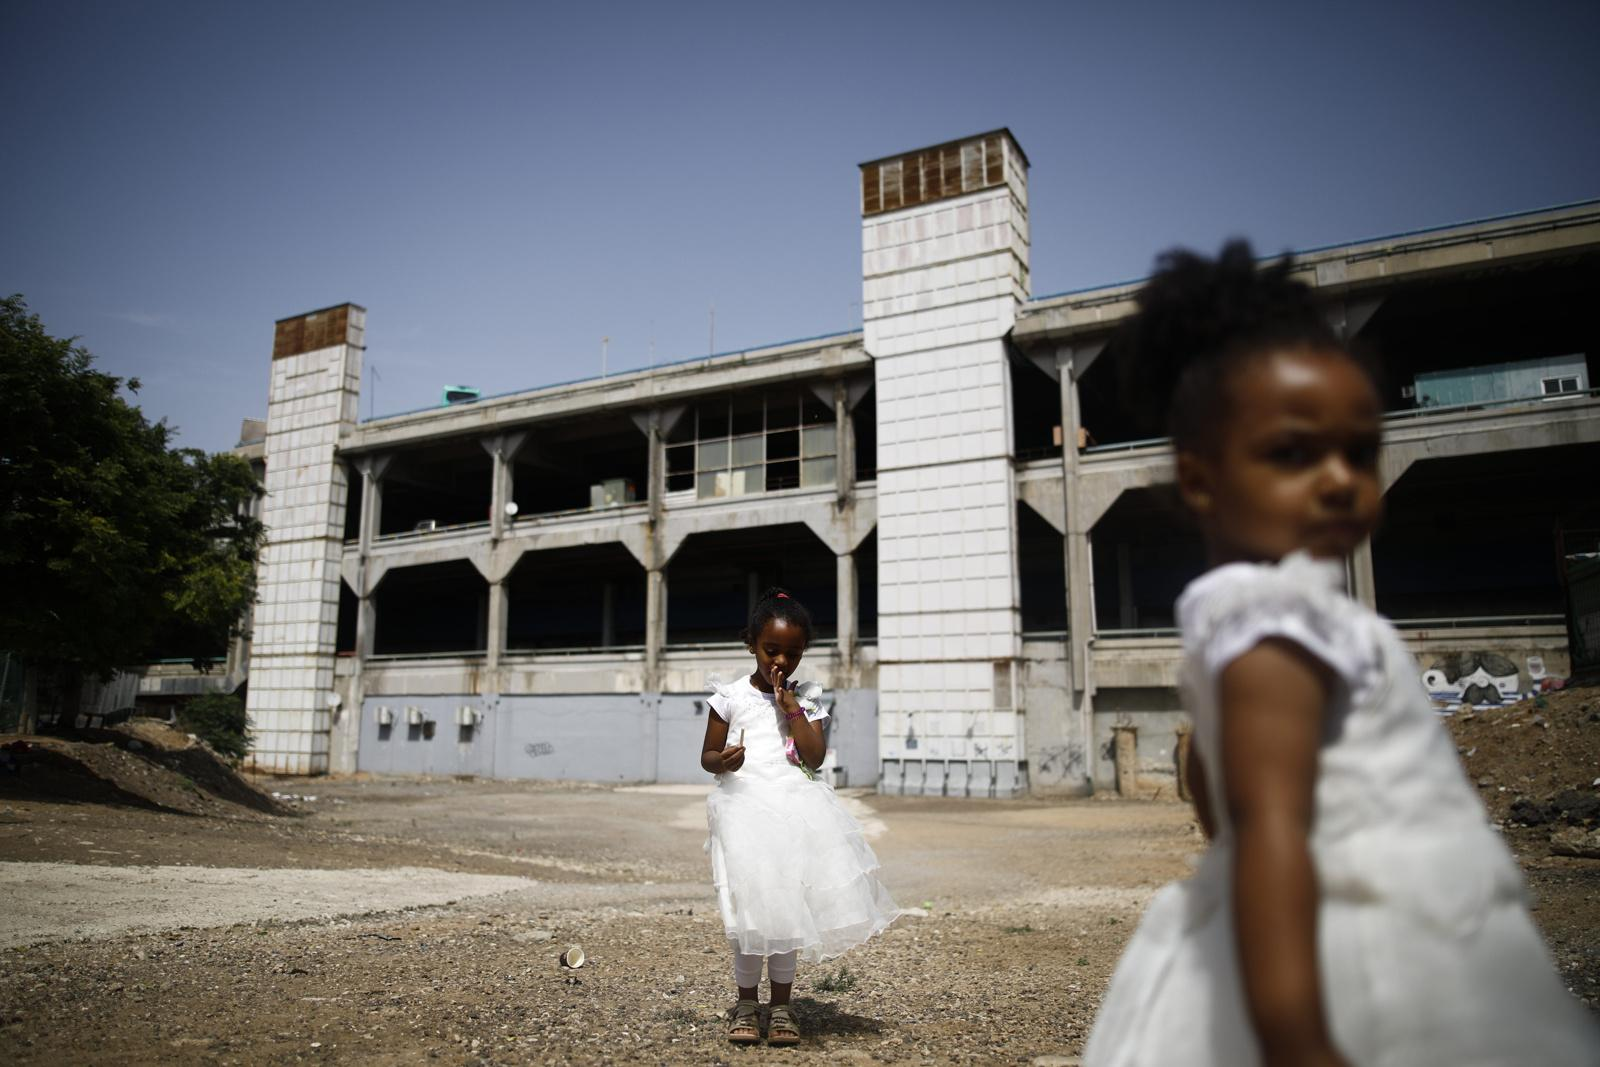 Girls from Eritrea play in an open area opposite the Central Bus Station in Tel Aviv, Israel, May 25, 2019.